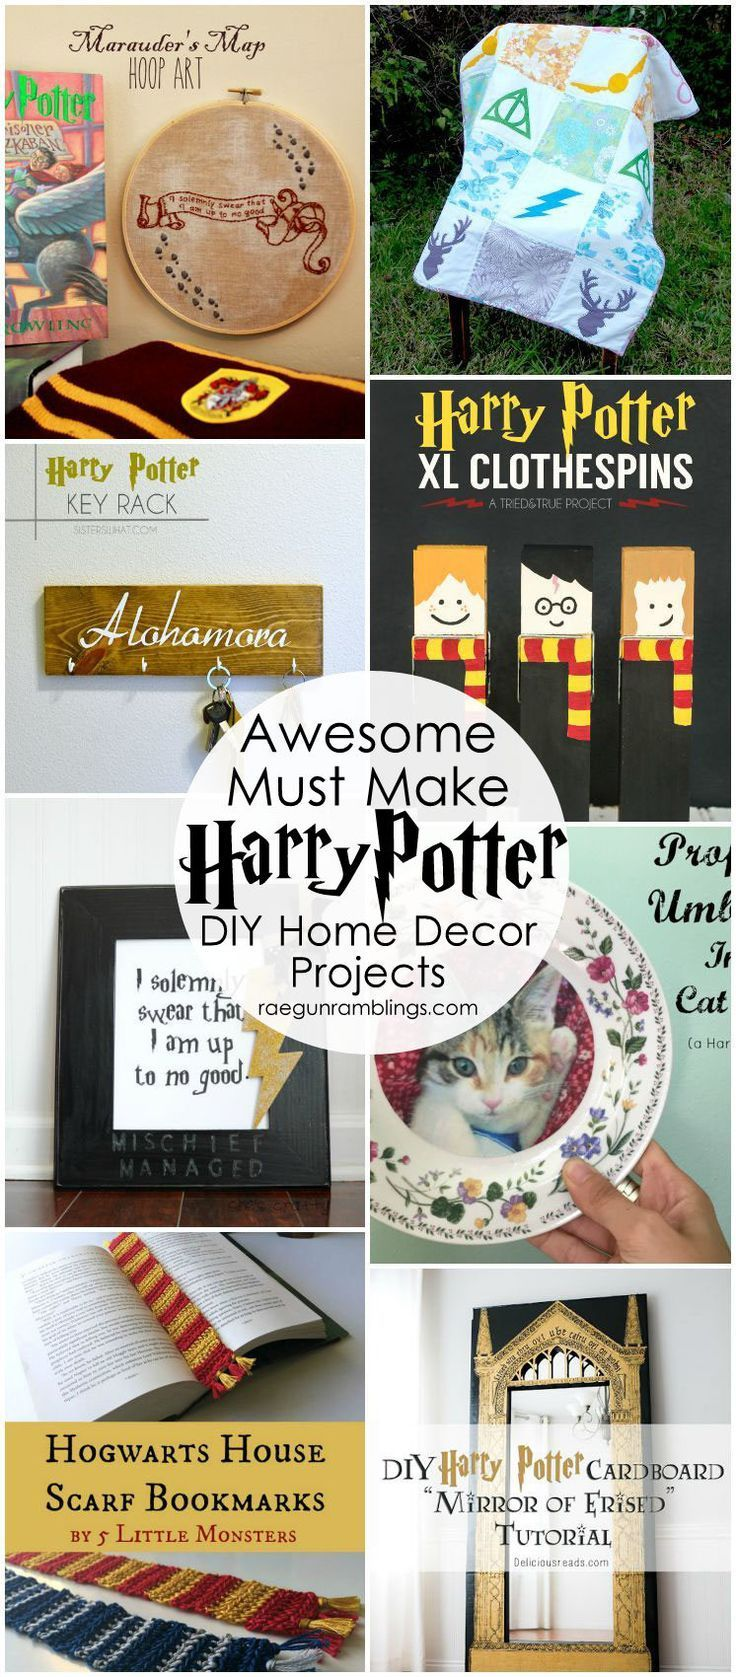 over 50 awesome harry potter projects diy crafts projects pinterest. Black Bedroom Furniture Sets. Home Design Ideas